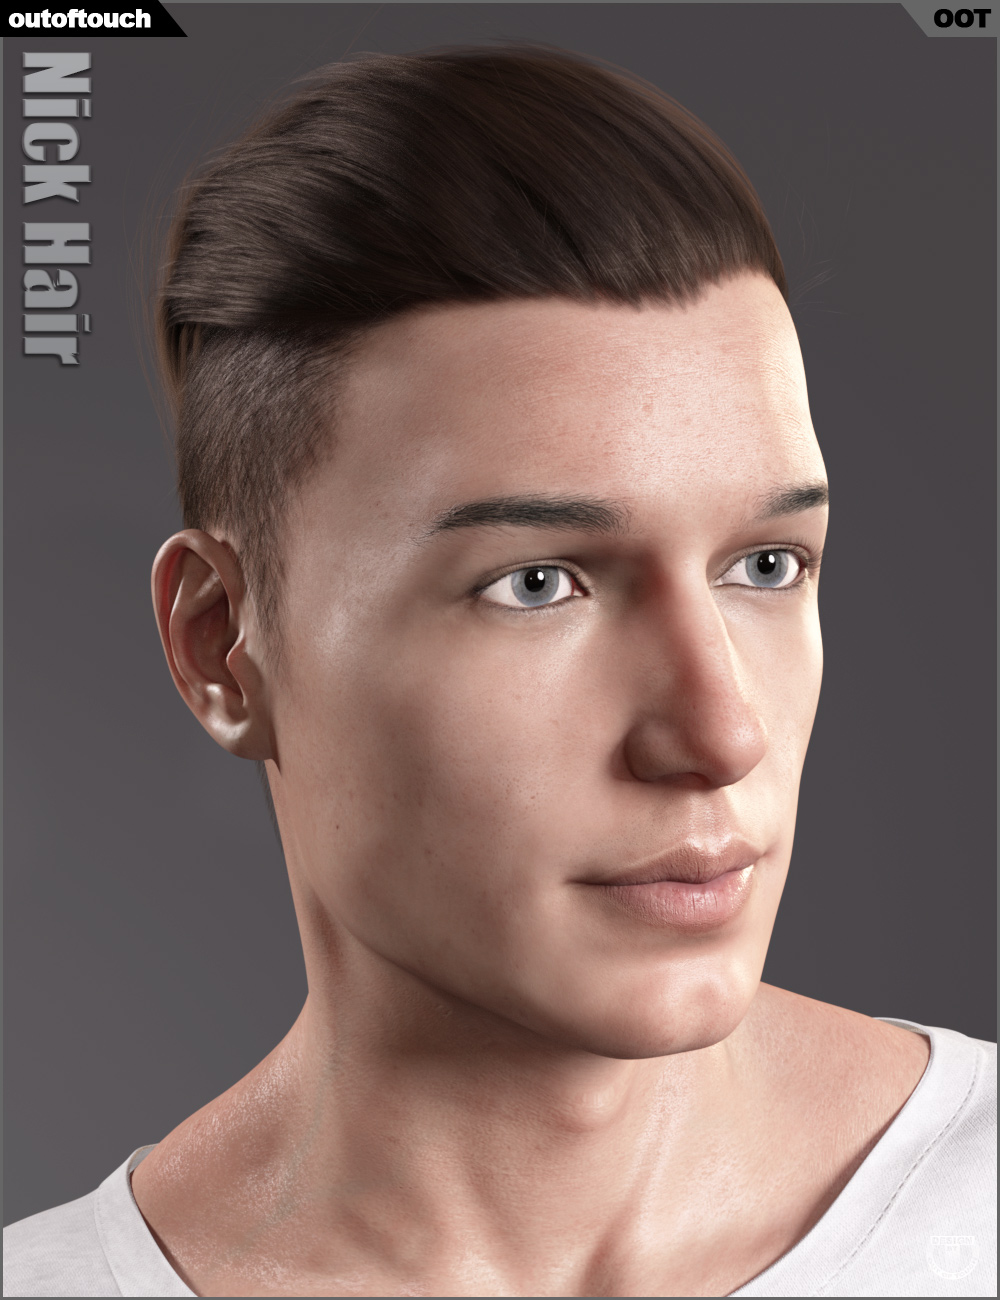 Nick Hair for Genesis 3 and 8 by: outoftouch, 3D Models by Daz 3D